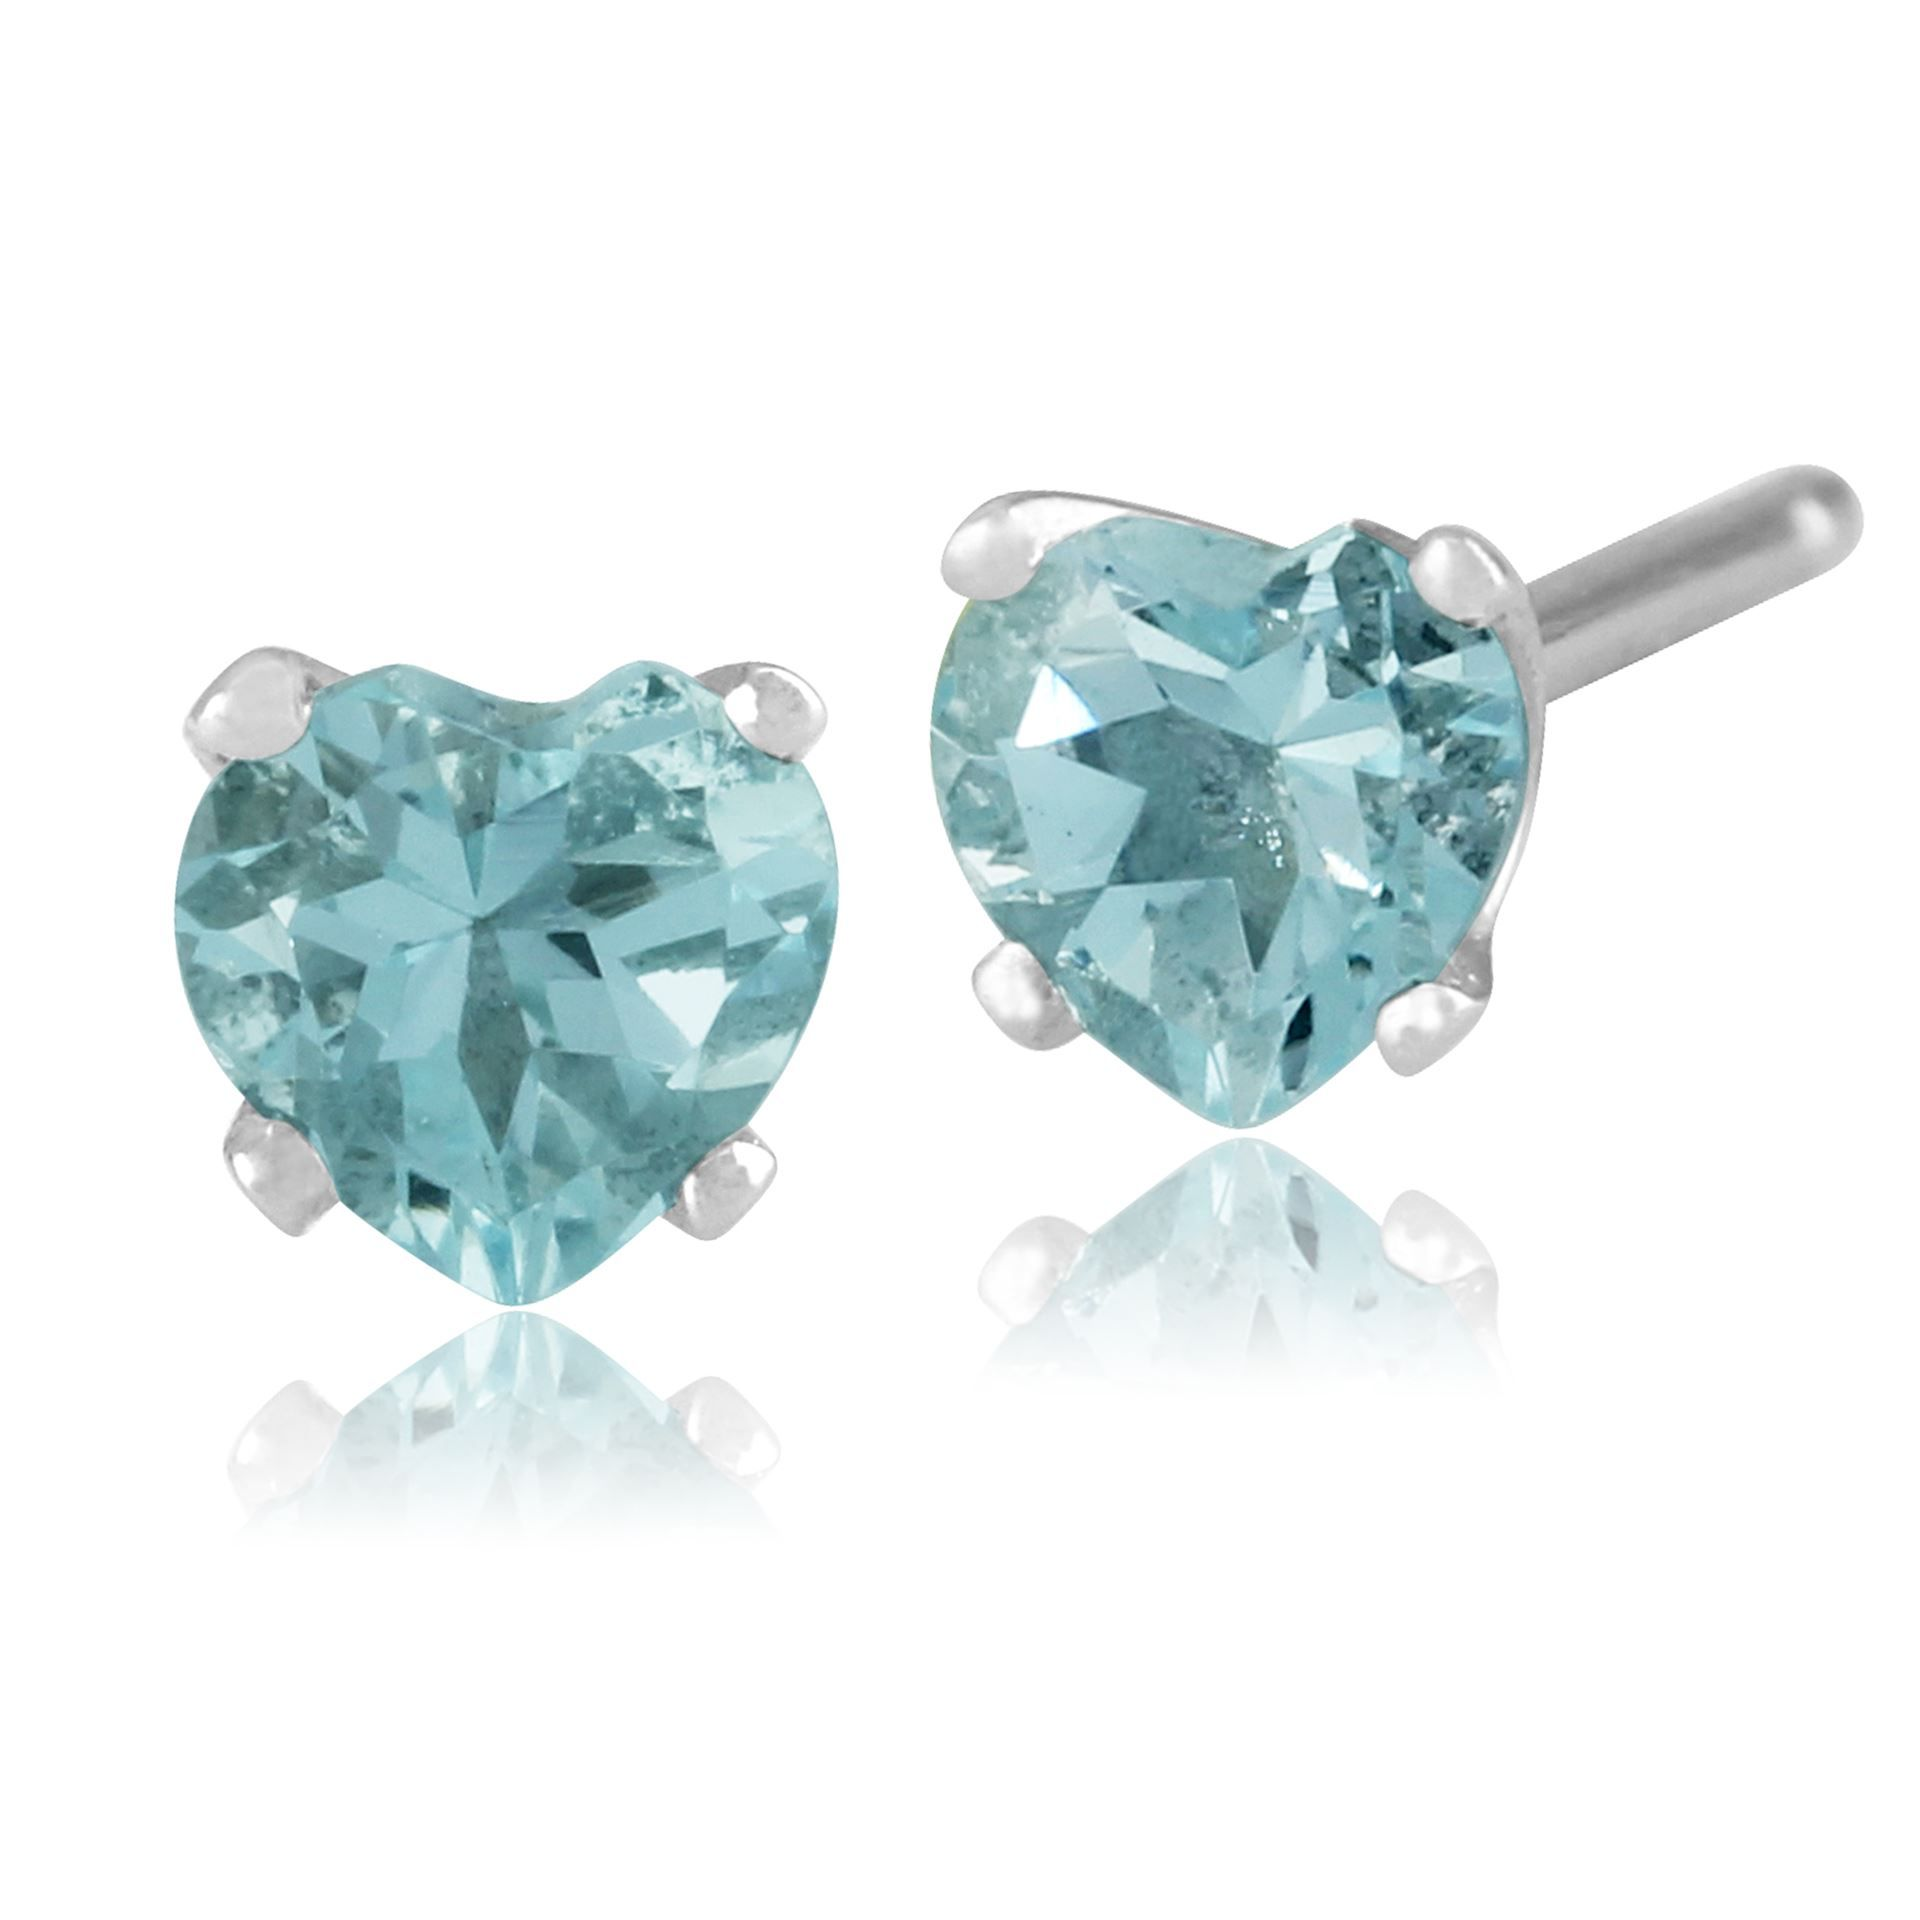 aqua white gold by order aquamarine design albion image exclusive set earrings gem pearls made to stud marine